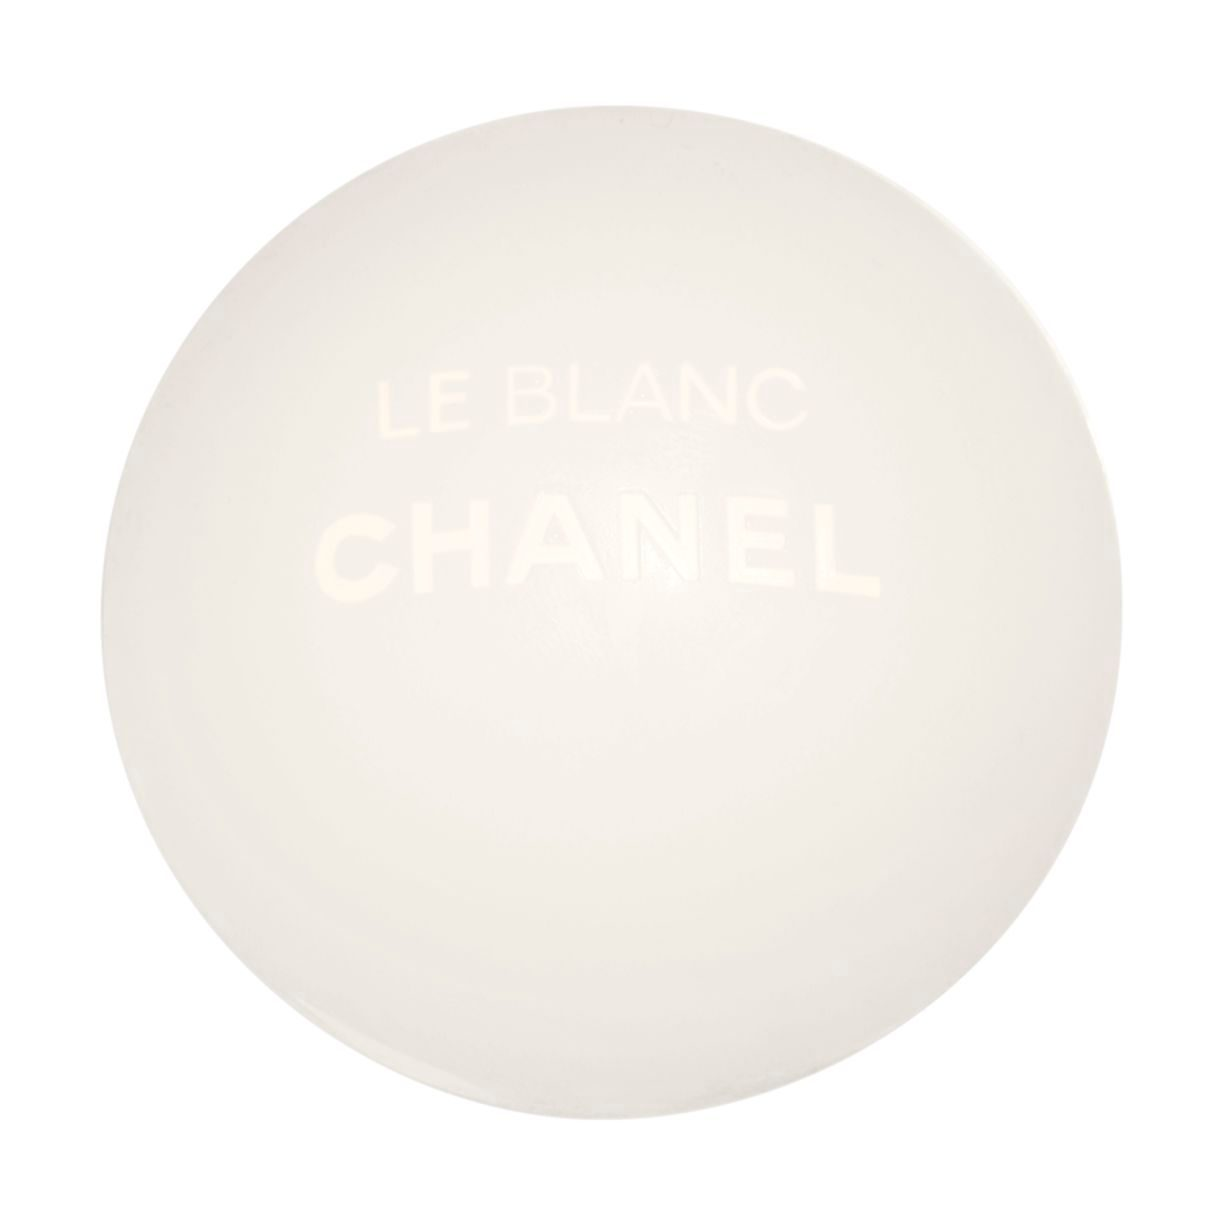 LE BLANC BRIGHTENING PEARL SOAP MAKEUP REMOVER 100g